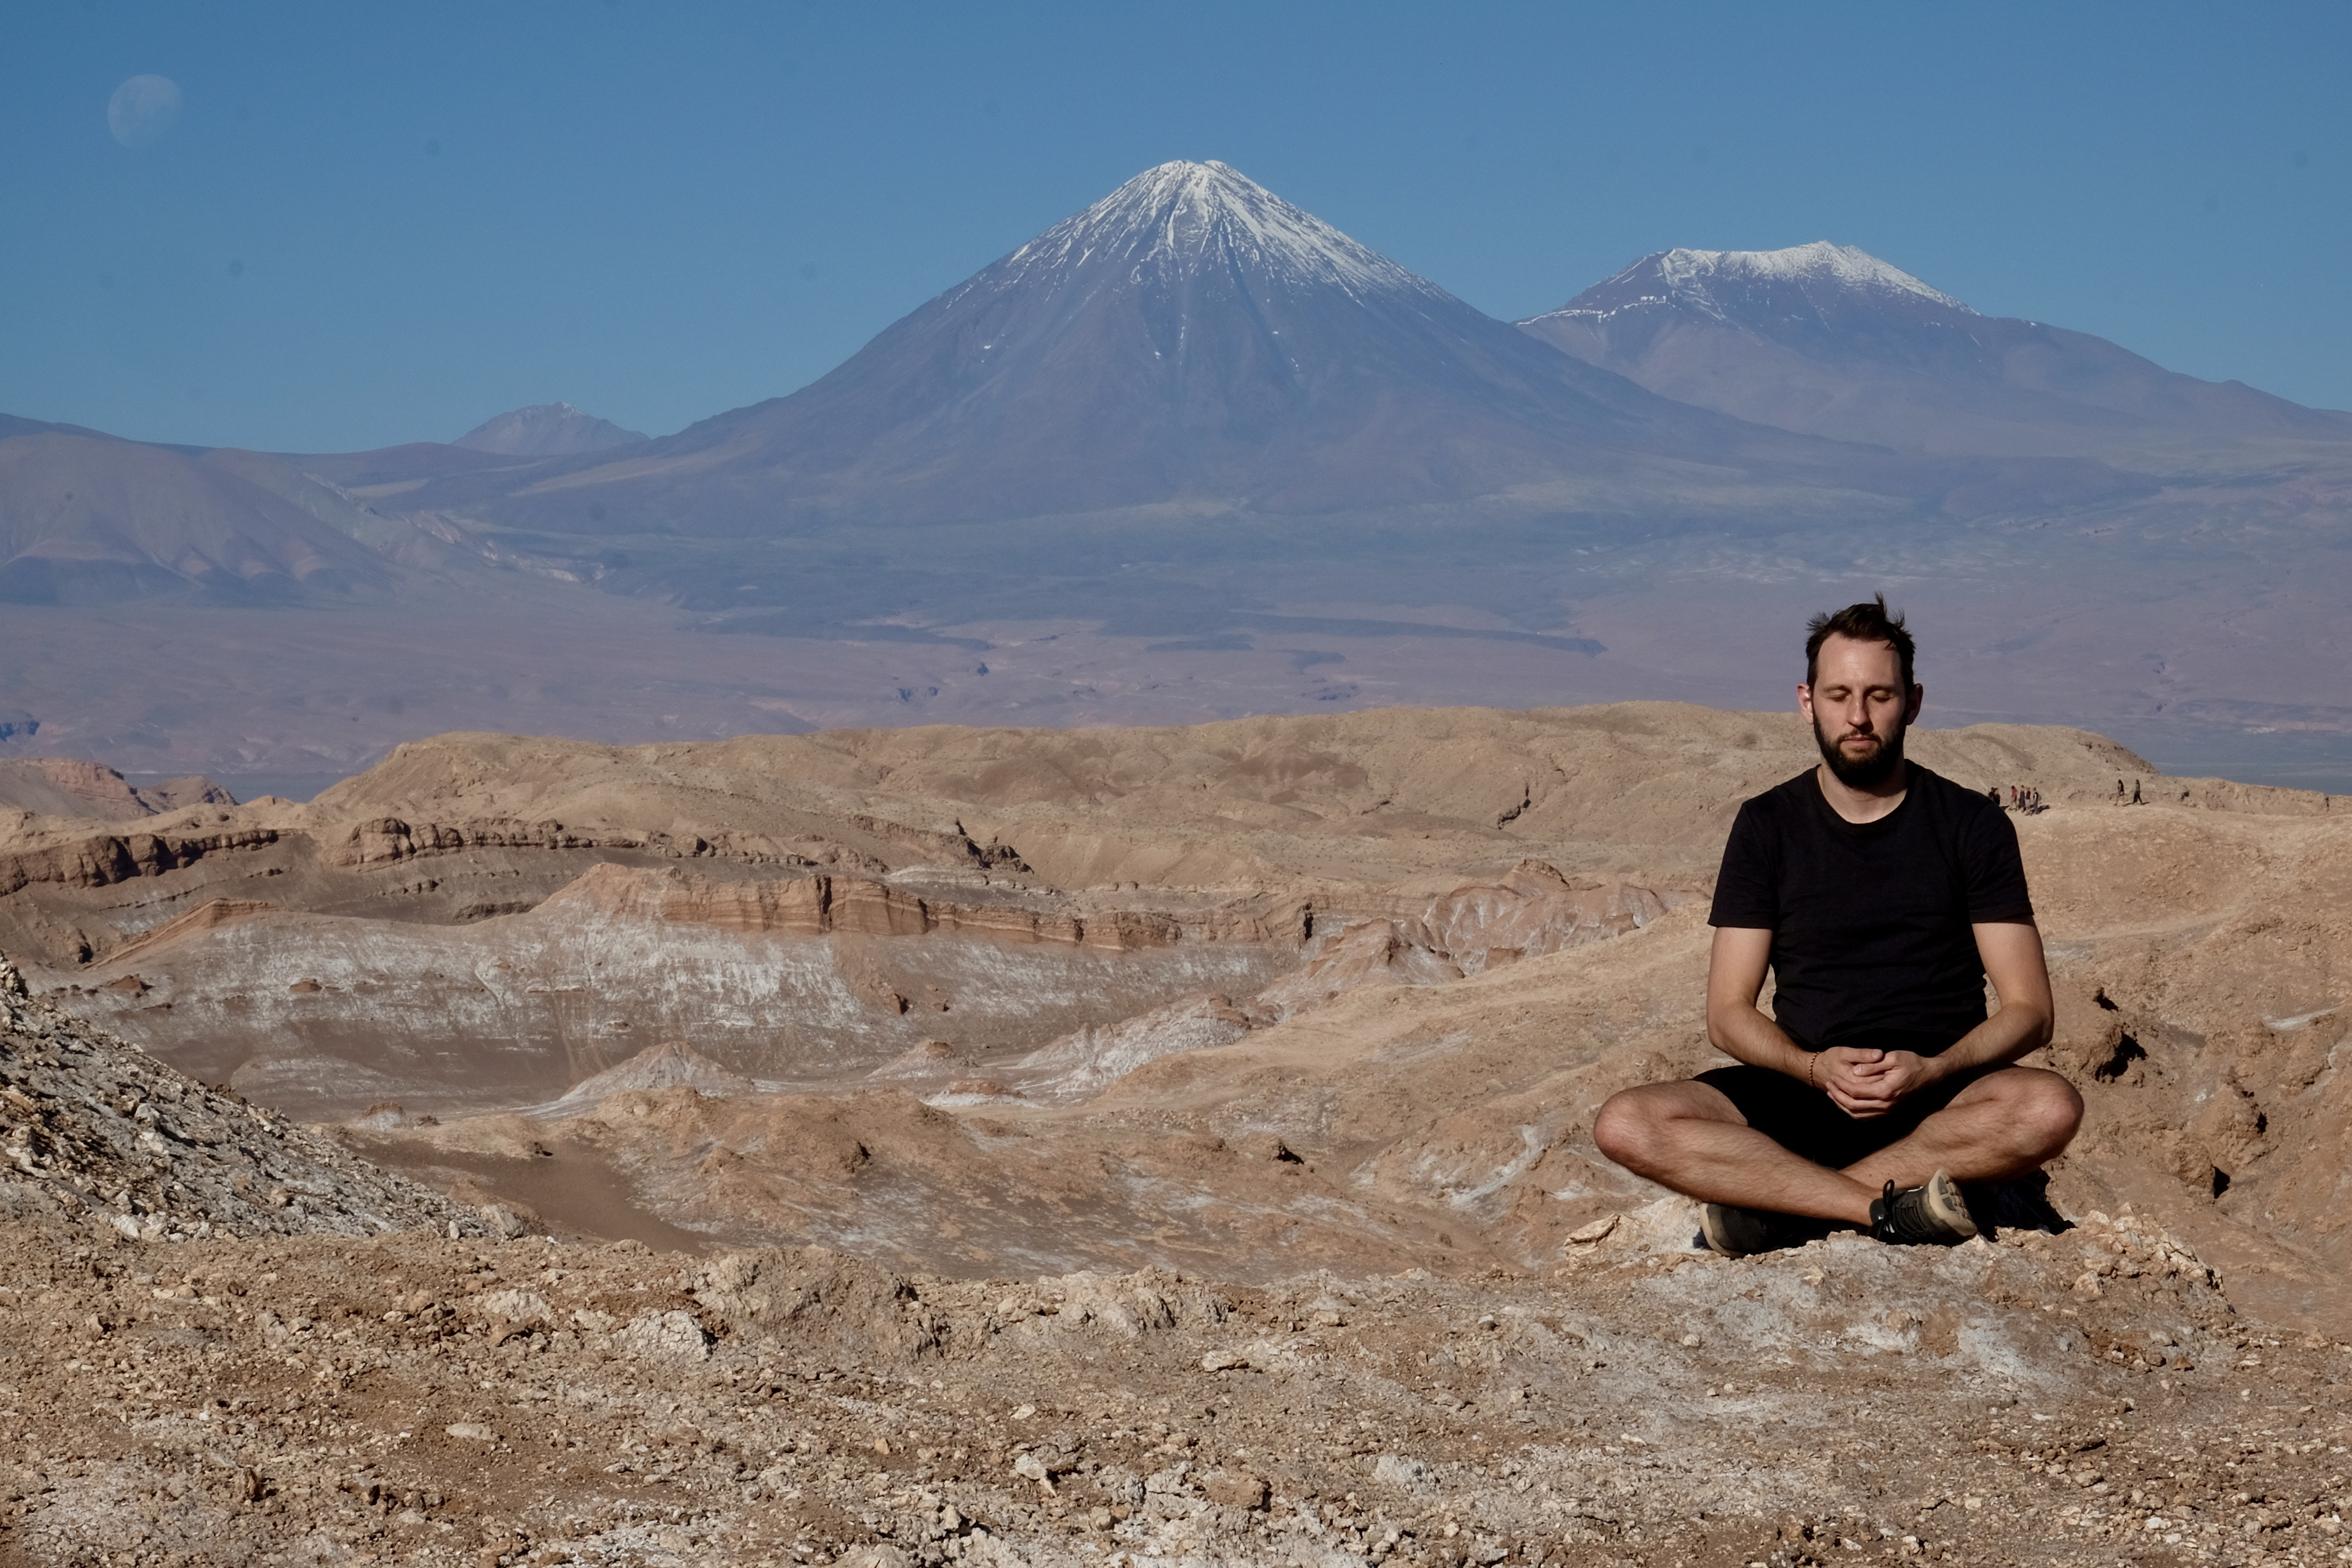 Rory Kinsella meditating in Chile